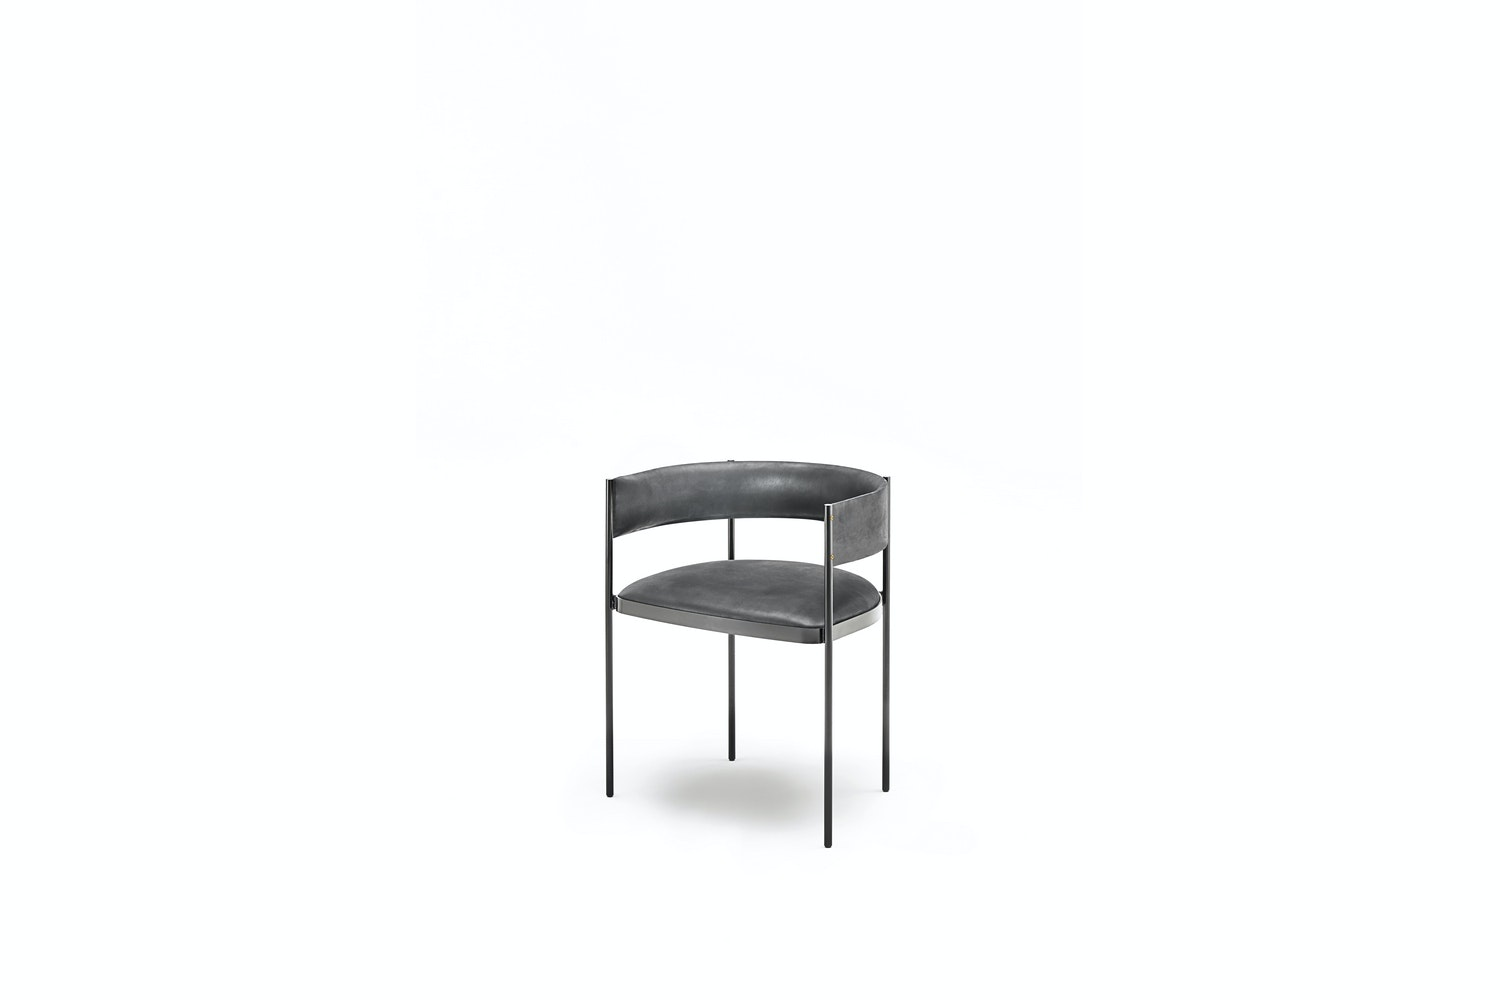 Era Chair by David Lopez Quincoces for Living Divani